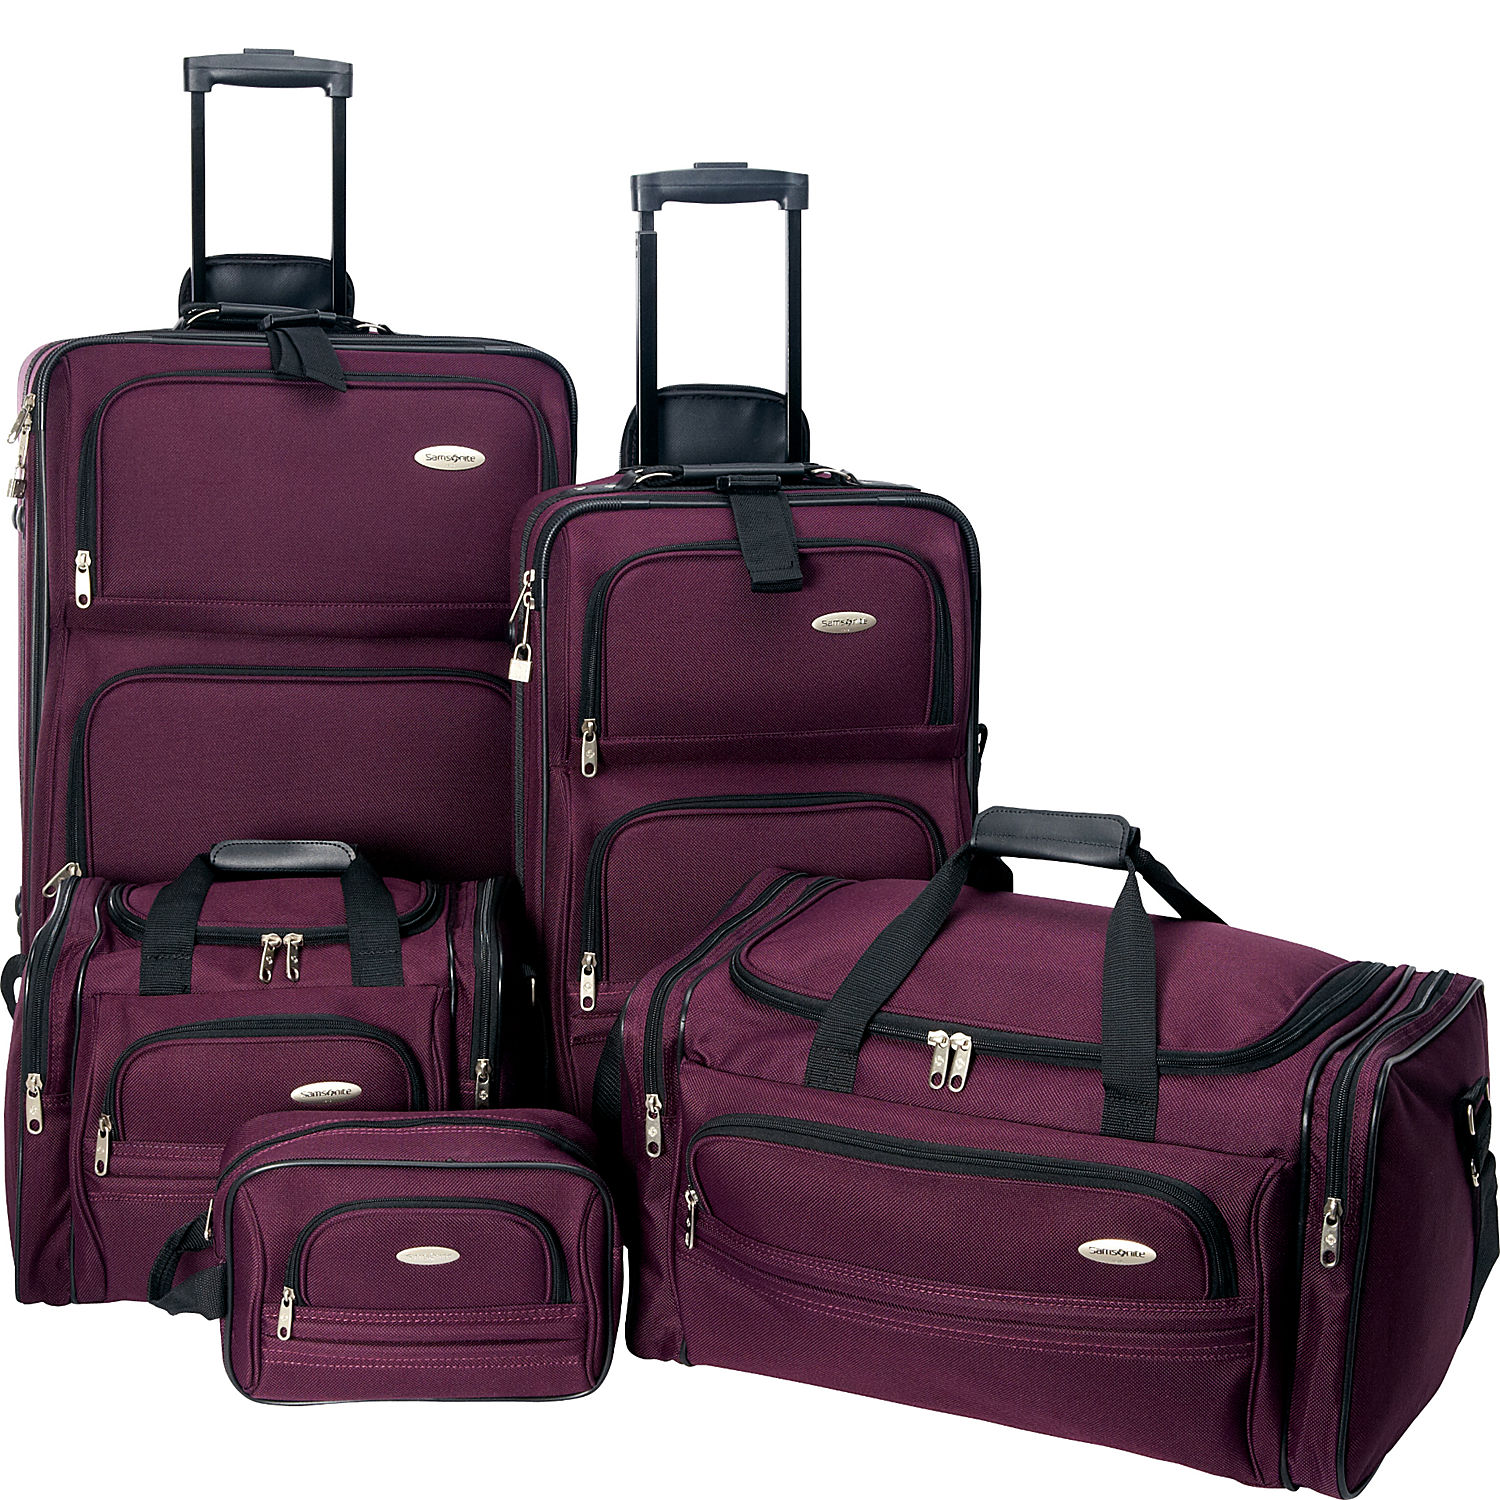 Buy the eBags Small Packing Cubes - 3pc Set at eBags - Pack and organize your essentials for overnight travel inside this versatile set of packing cubes frPrice: $